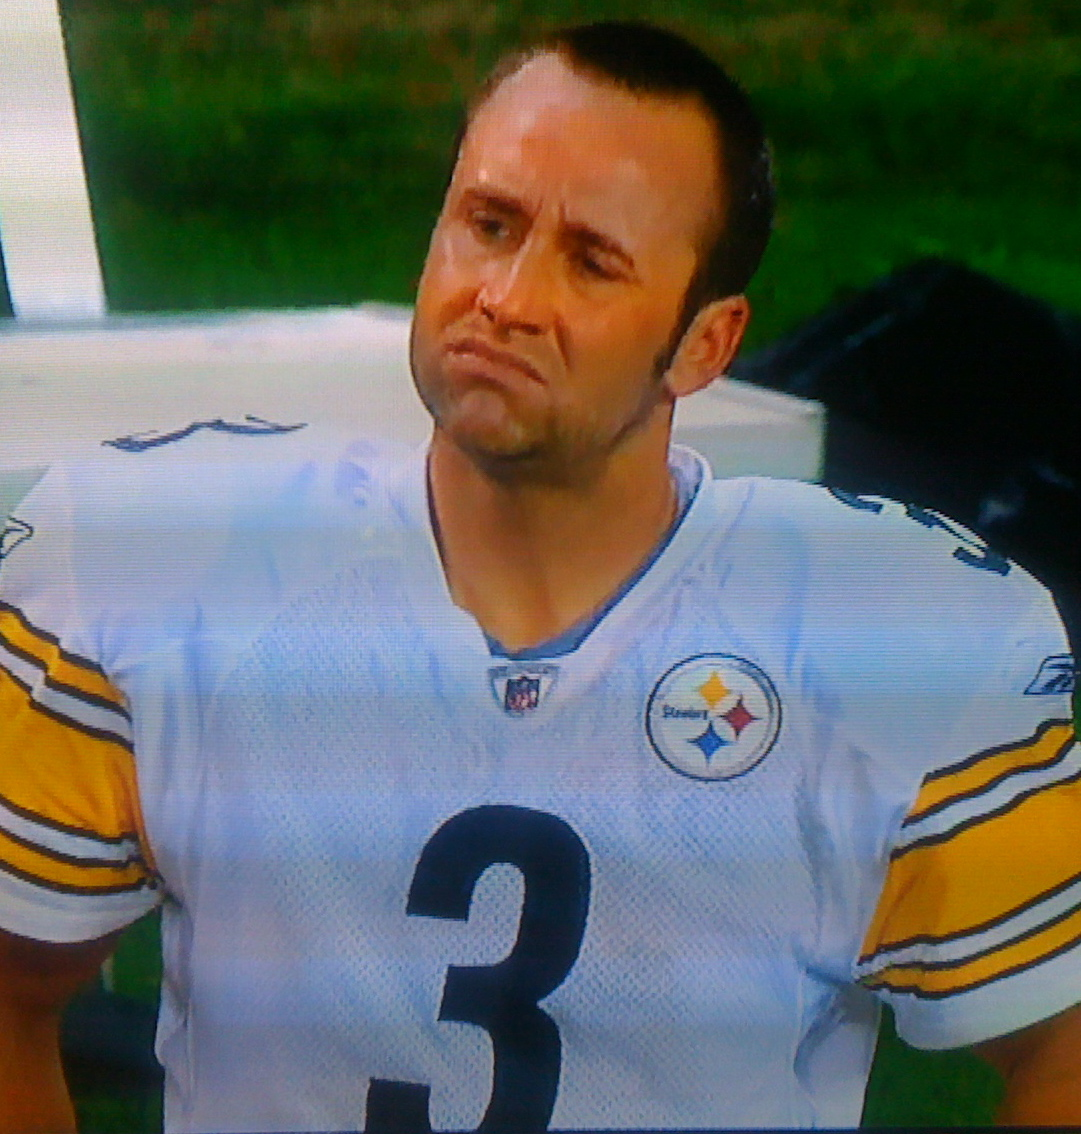 jeff Reed ... is your cock, no commitment, just your hard cock in her hungry pussy.